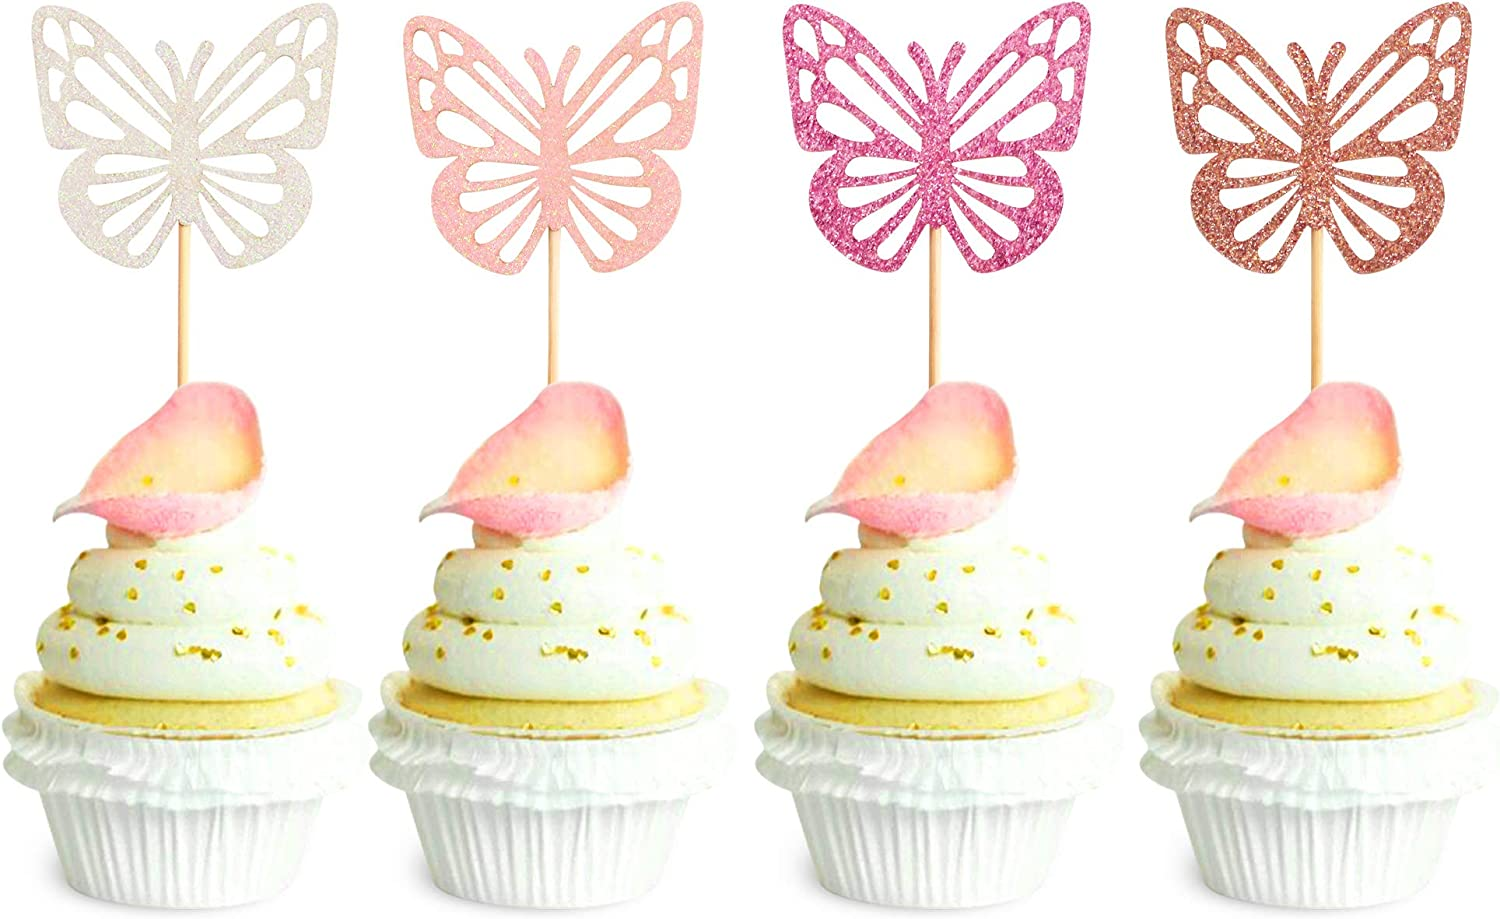 Ercadio 48 Pack Assembled Butterfly Cupcake Toppers Colorful Glitter Butterfly Cupcake Picks Baby Shower Kids Birthday Party Cake Decorations Supplies